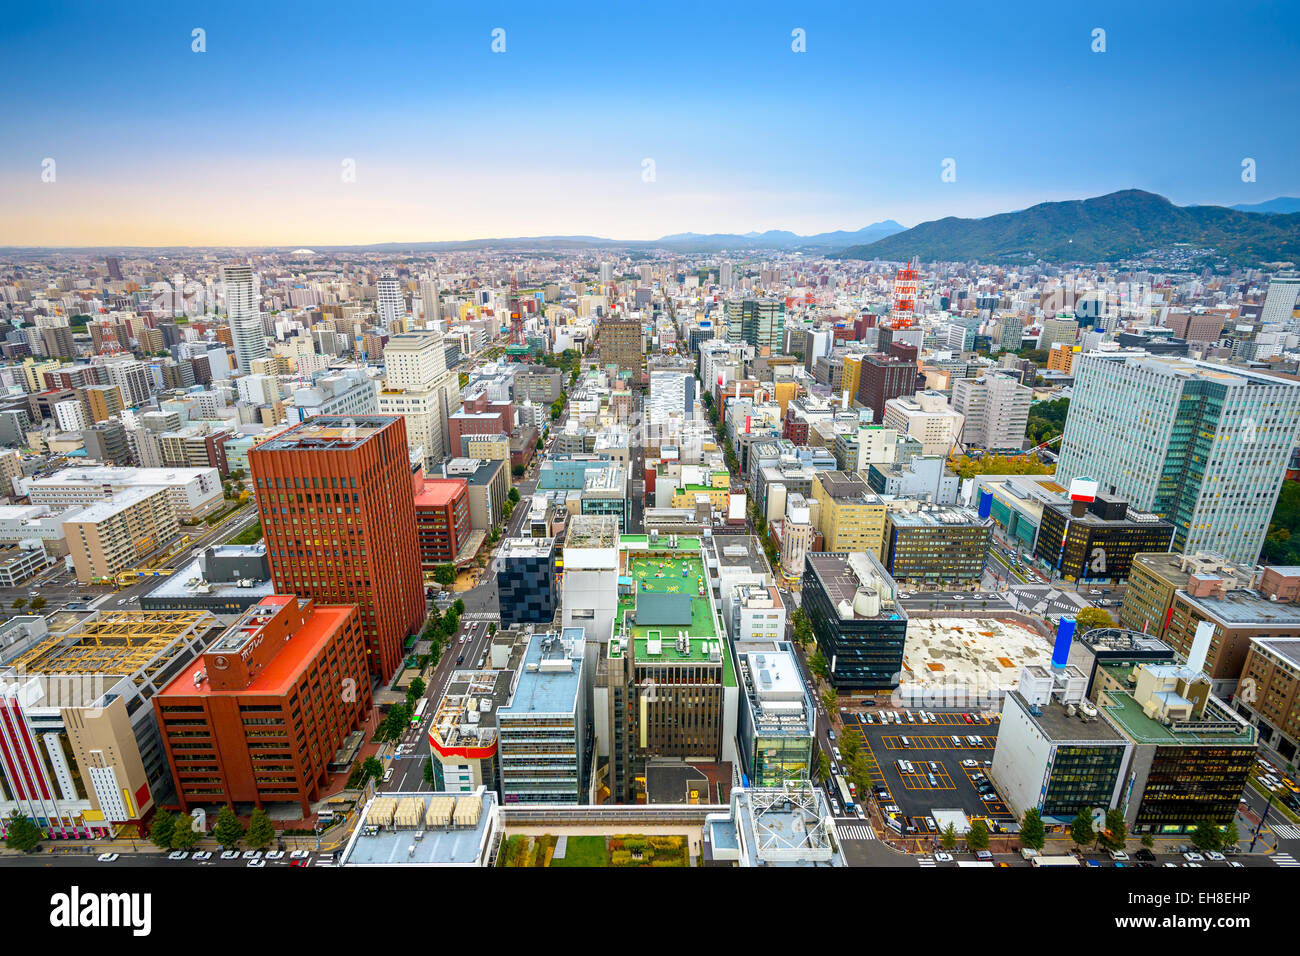 Sapporo, Japan central ward cityscape viewed  from above. - Stock Image